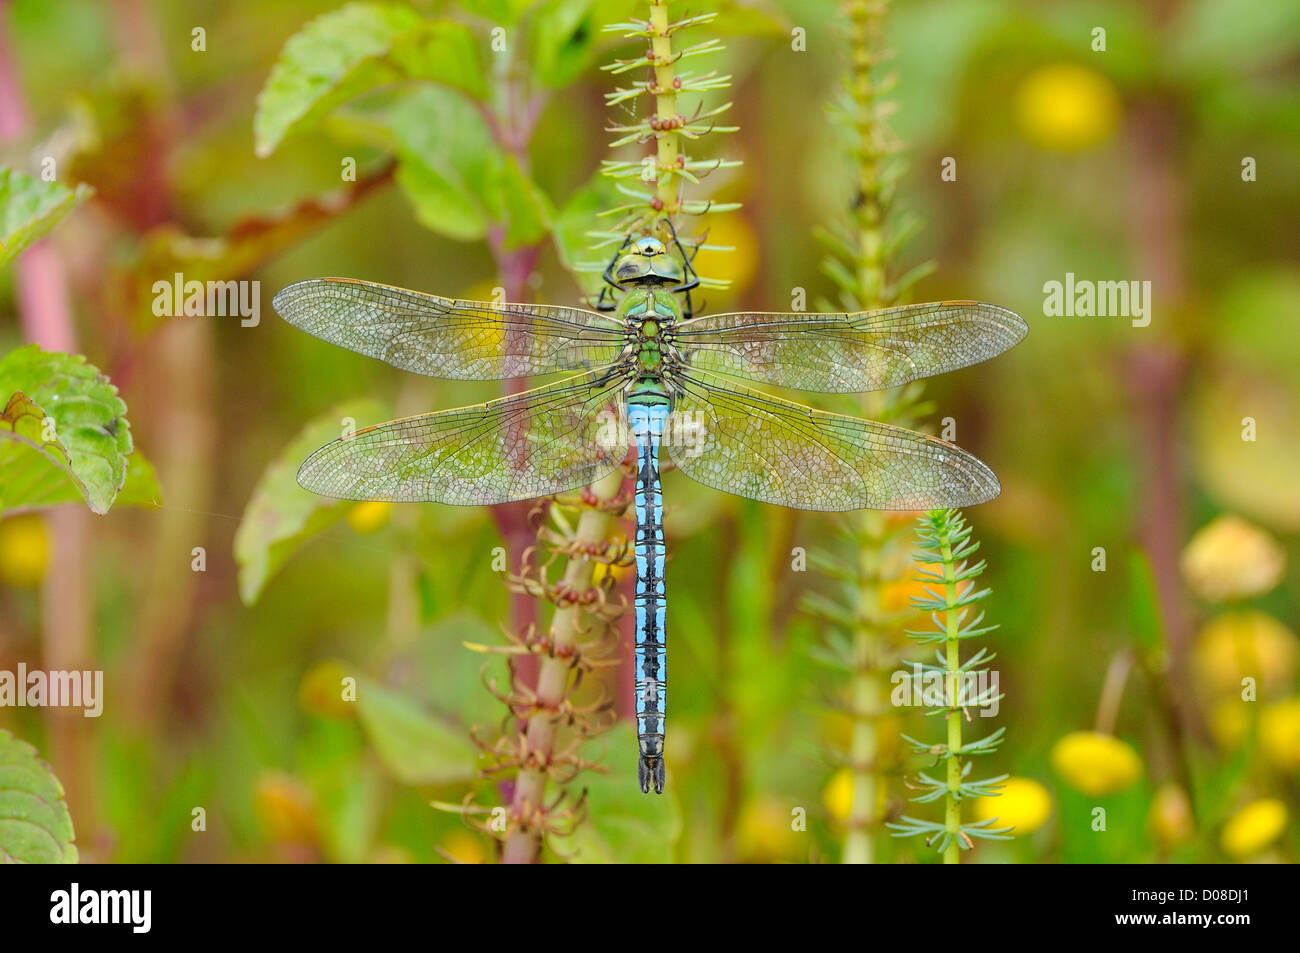 Emperor Dragonfly (Anax imperator) male at rest on aquatic vegetation, Oxfordshire, England, June - Stock Image